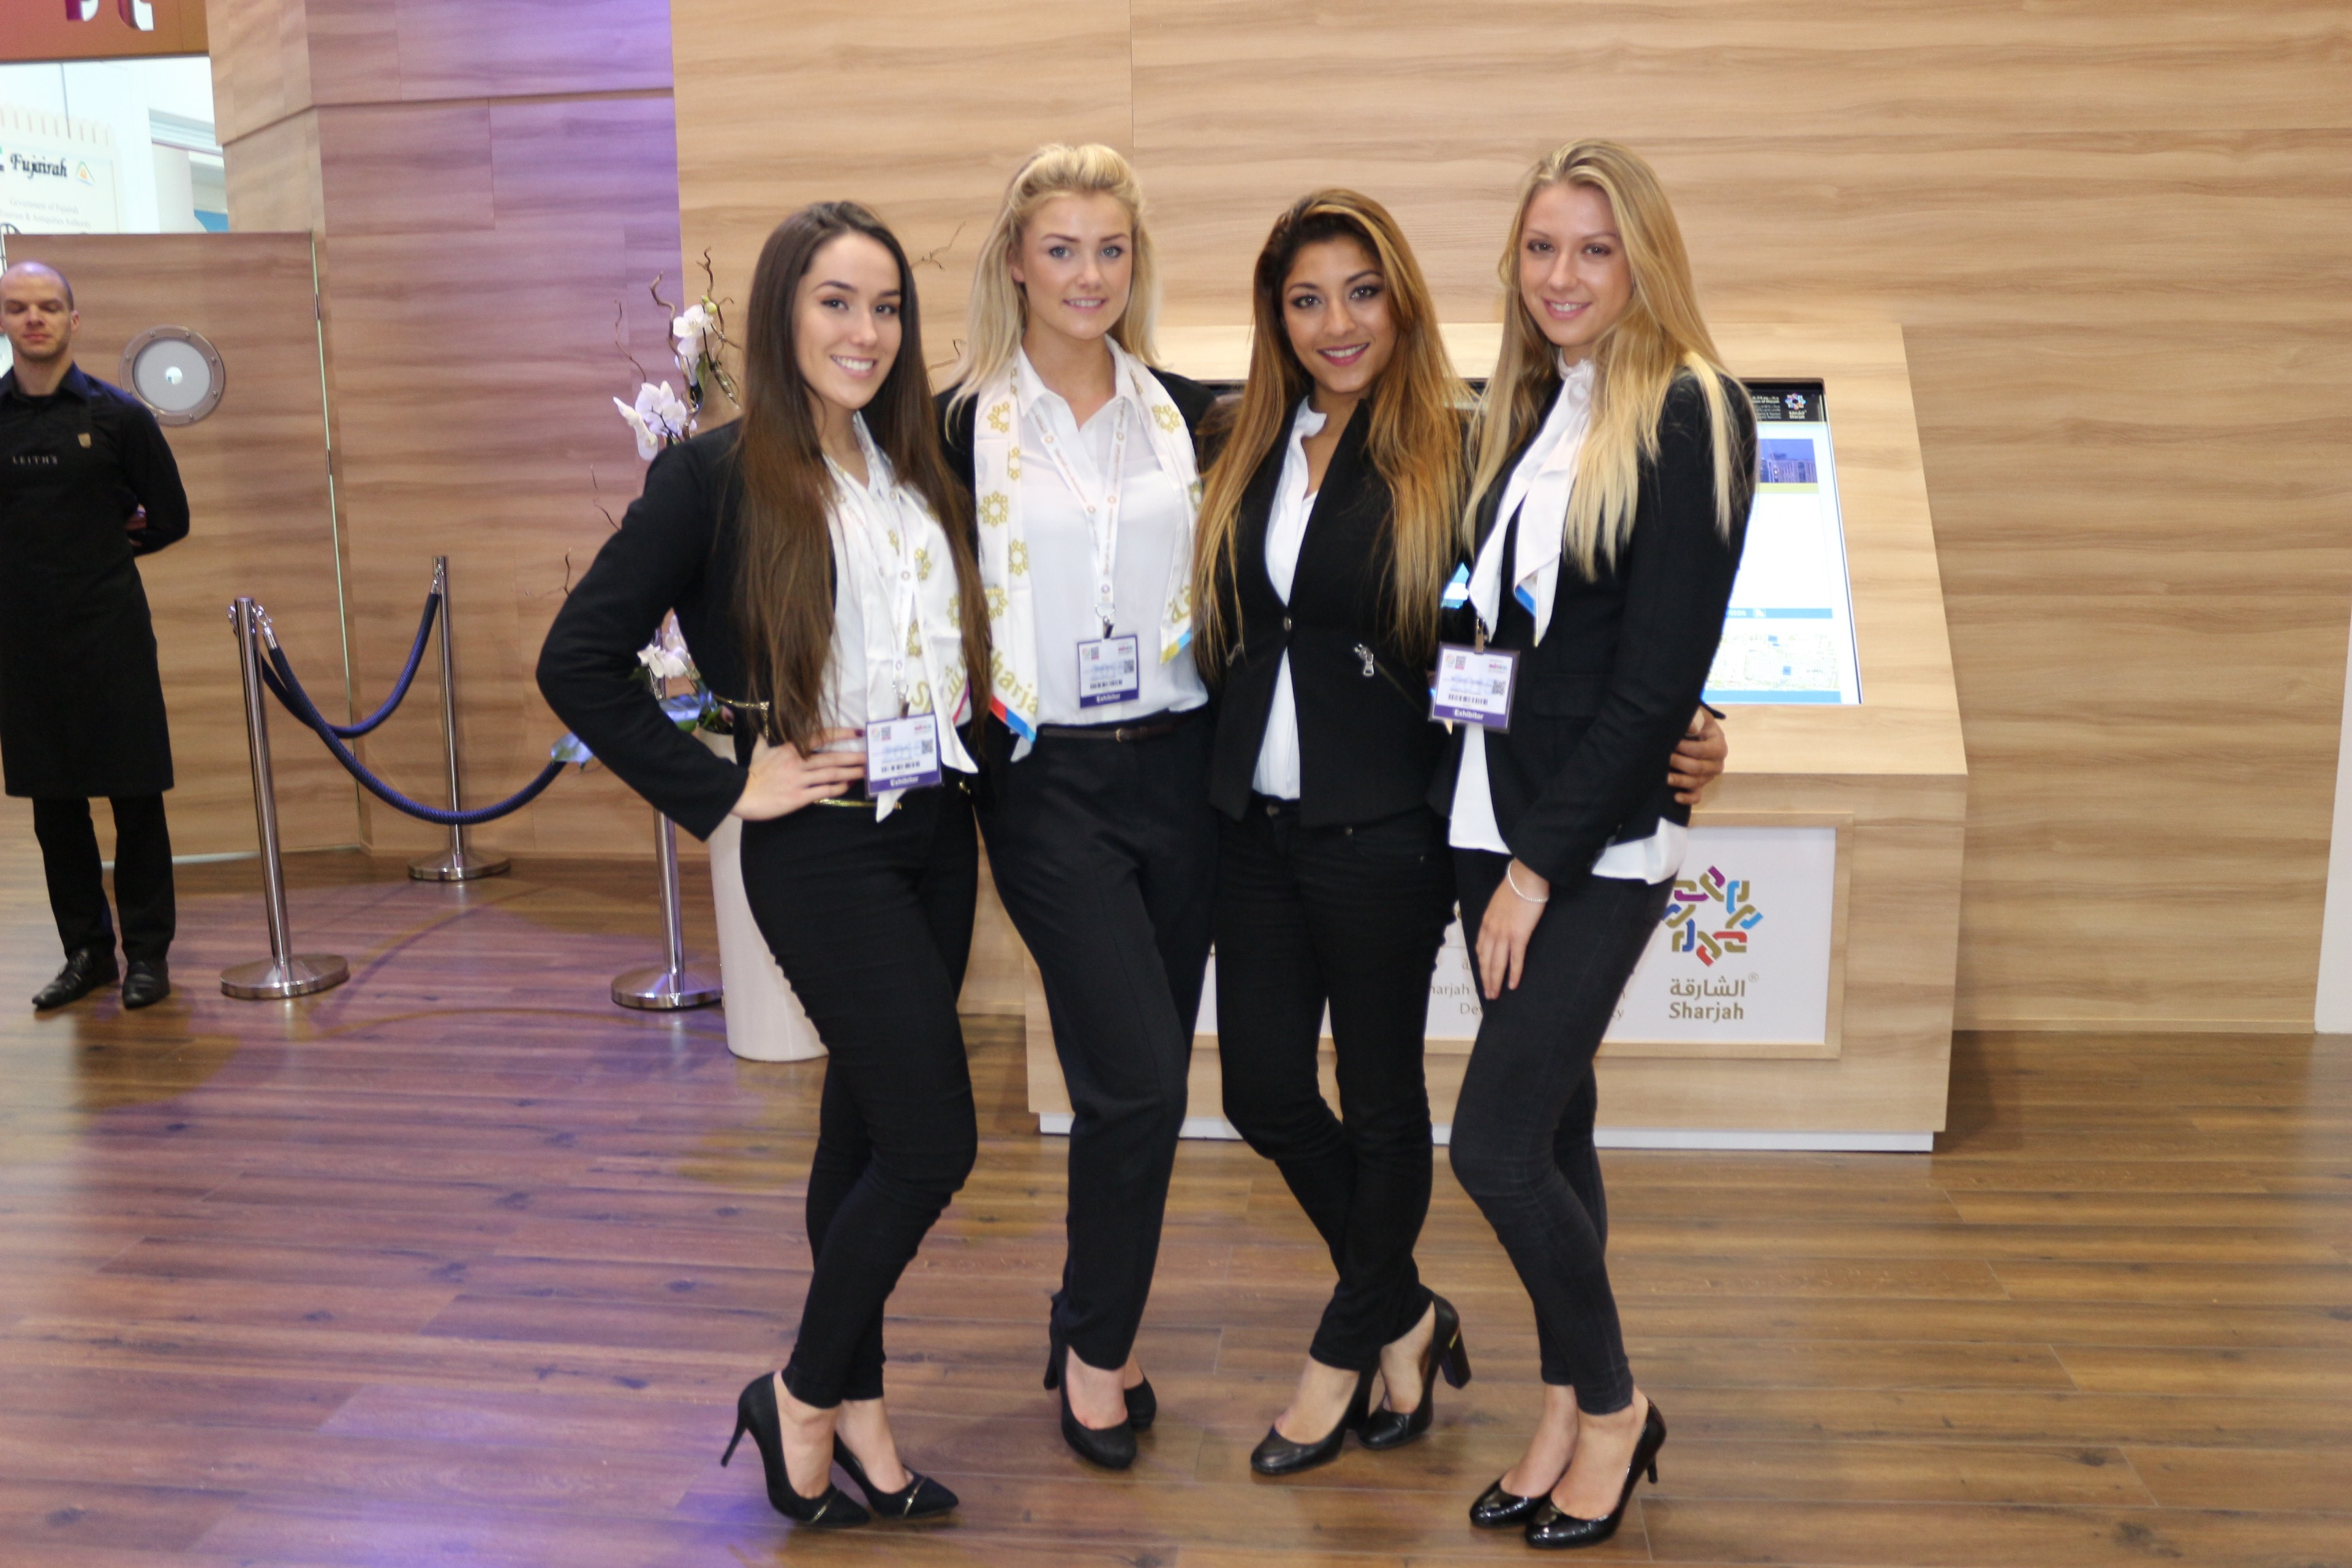 Exhibition Stand Hostess : Hostess agency exhibition girls limited staff